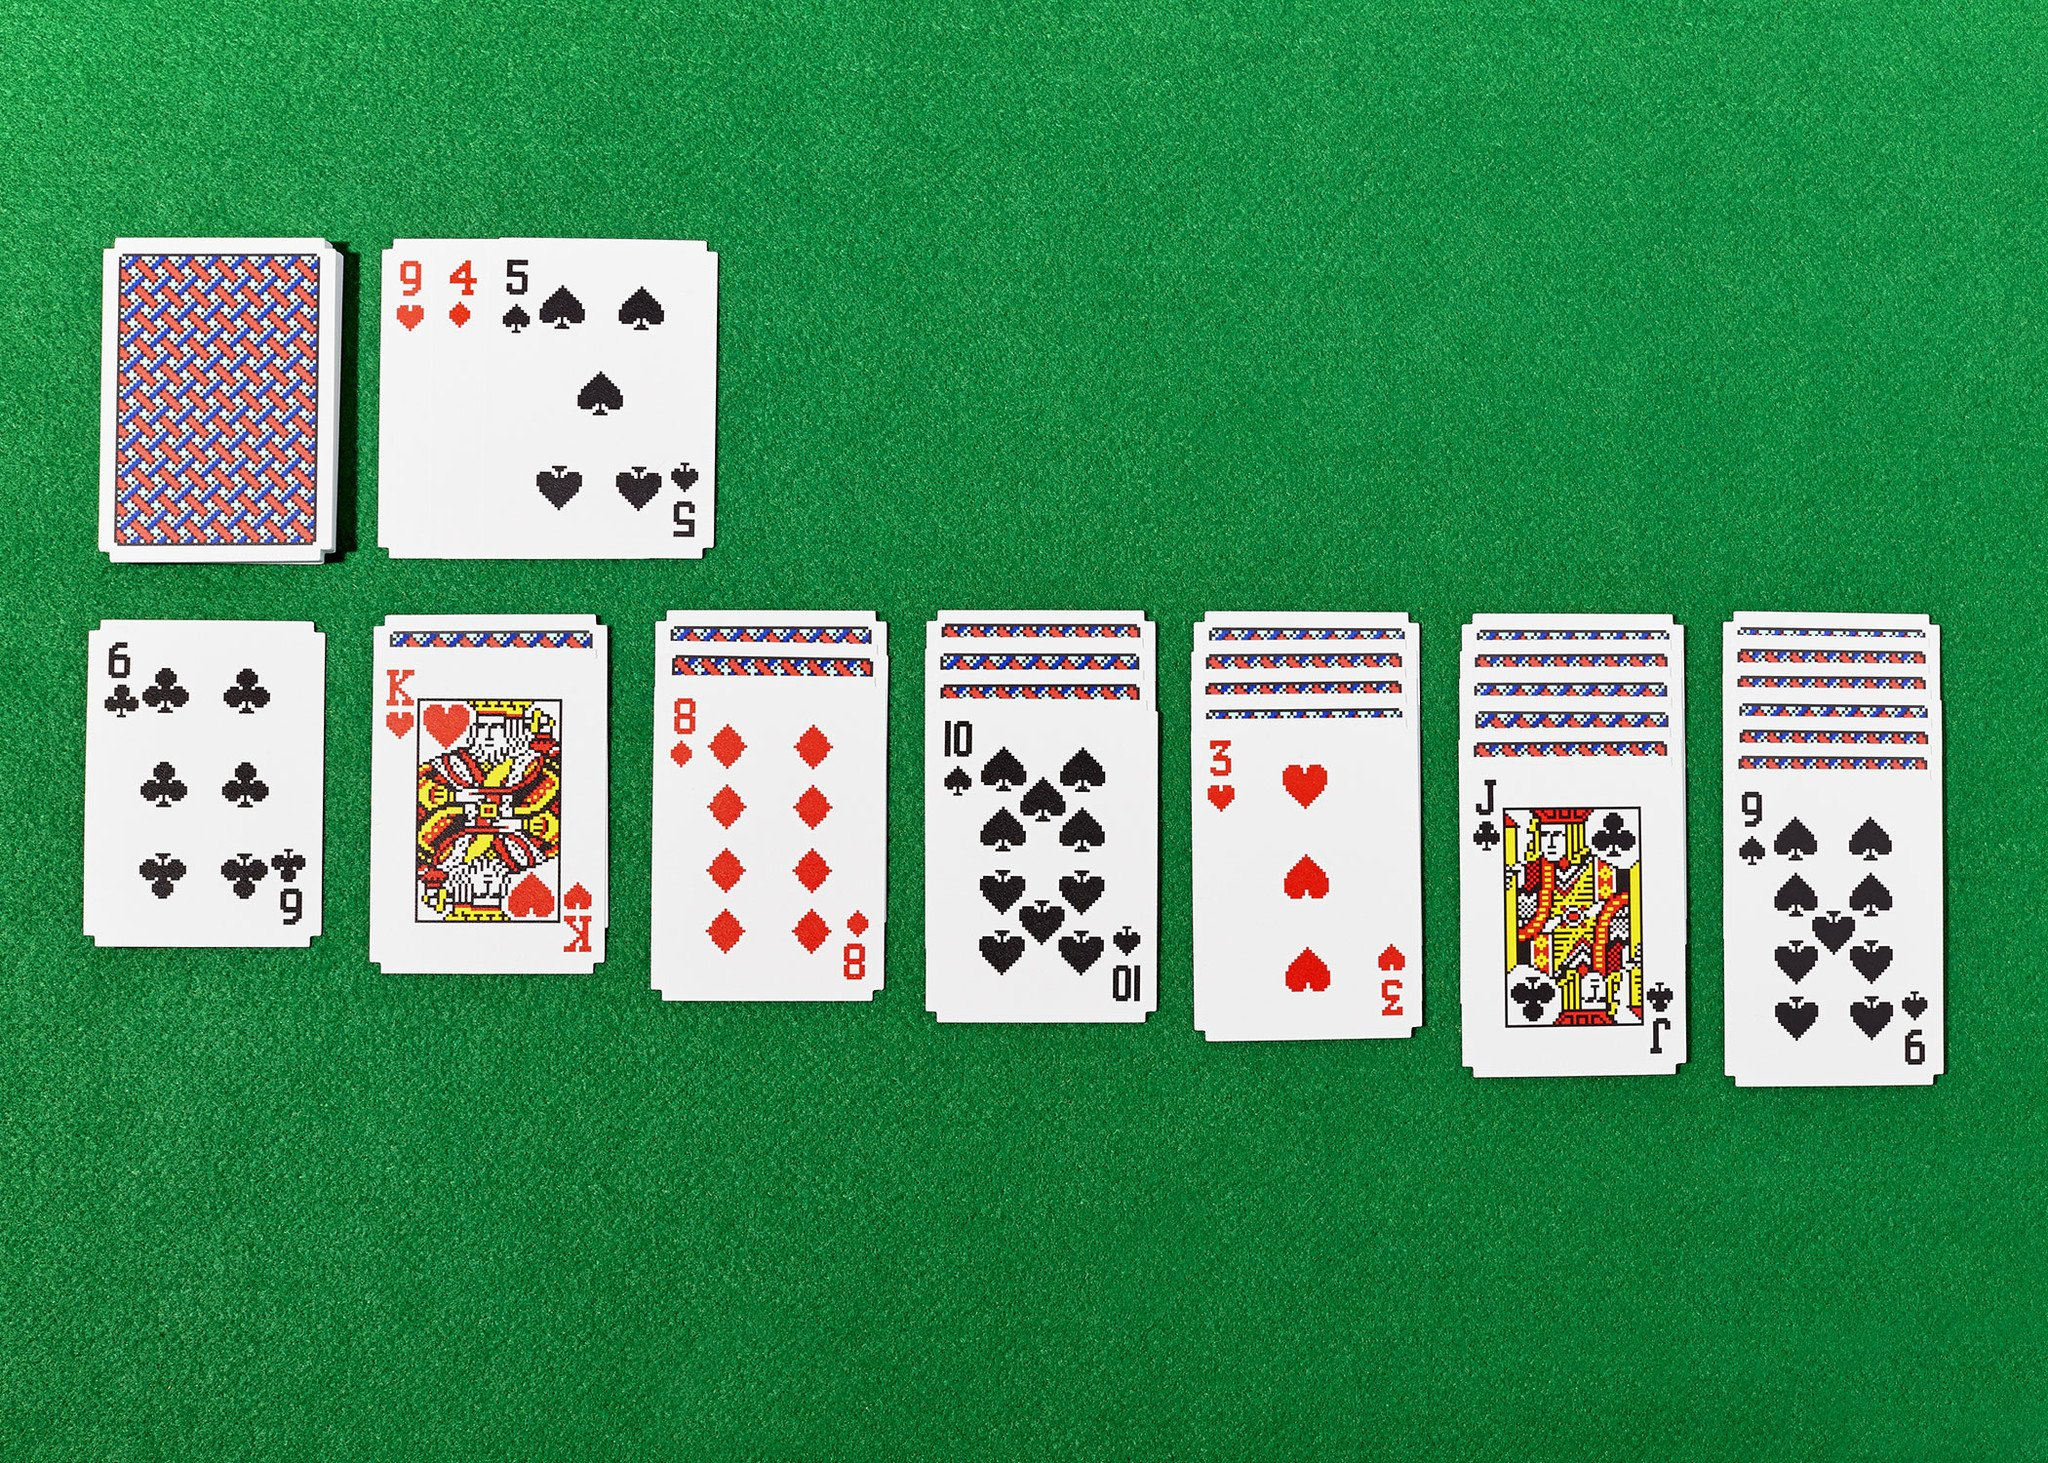 Solitaire Cards Solitaire cards, Card games, Playing cards